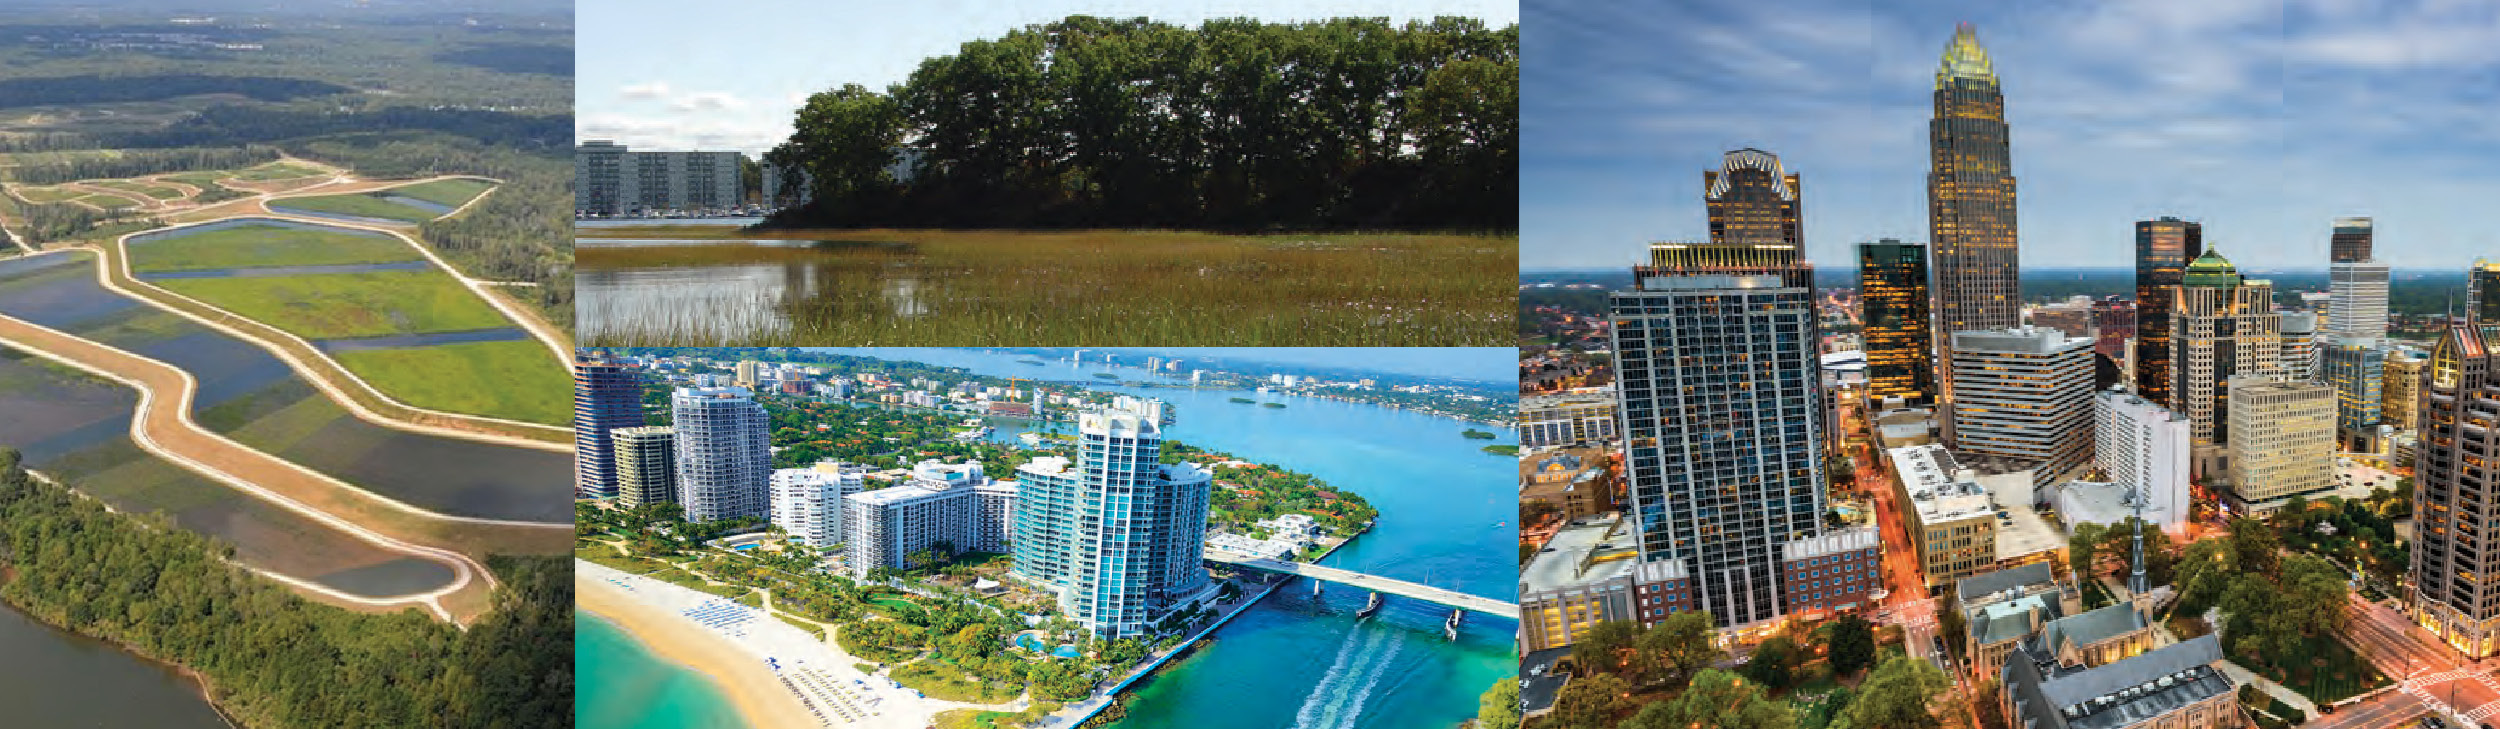 Collage of urban and rural areas